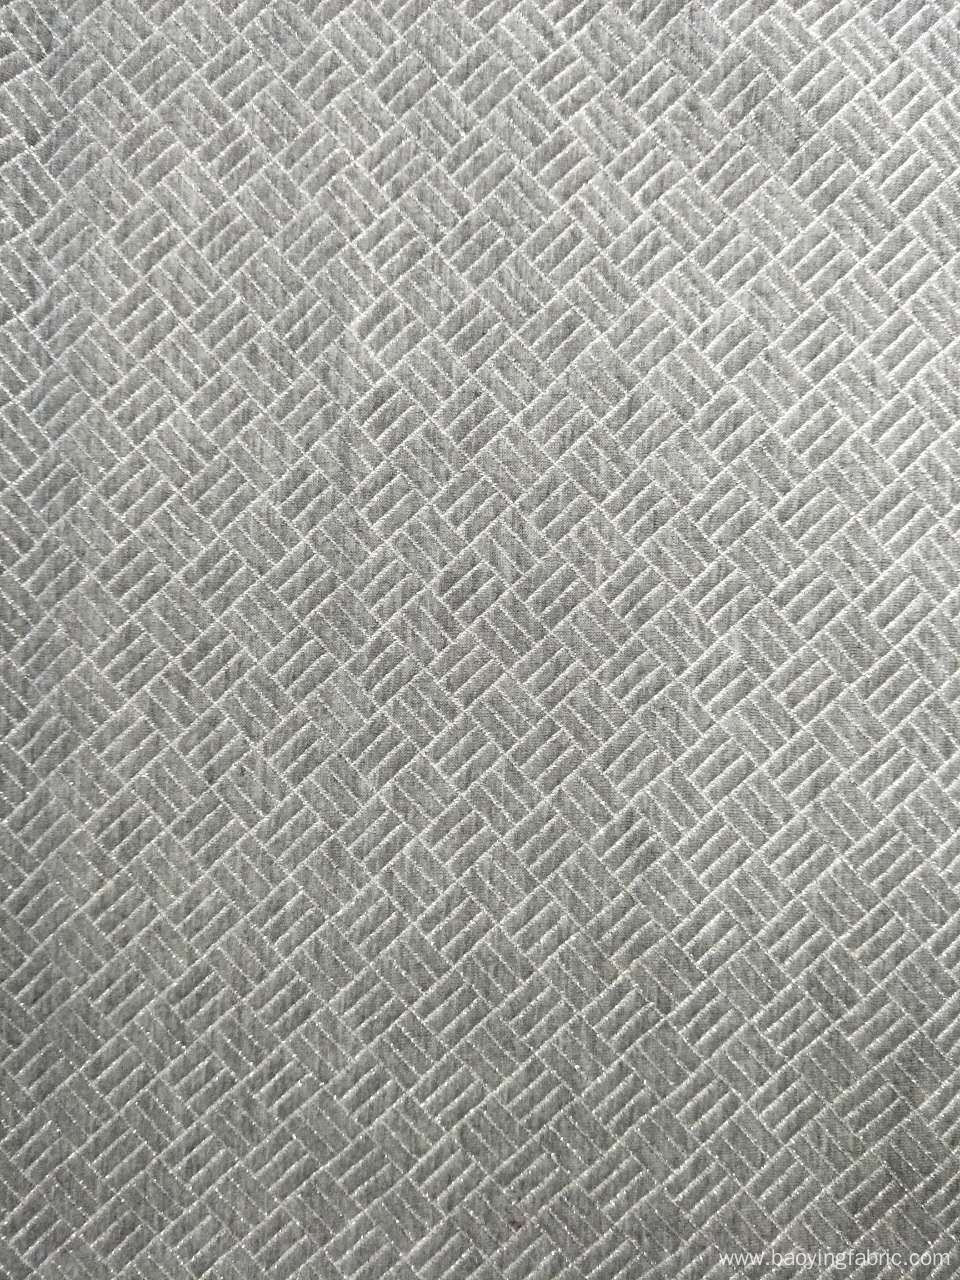 Ribbed Knit Fabric For Cuffs & Collars